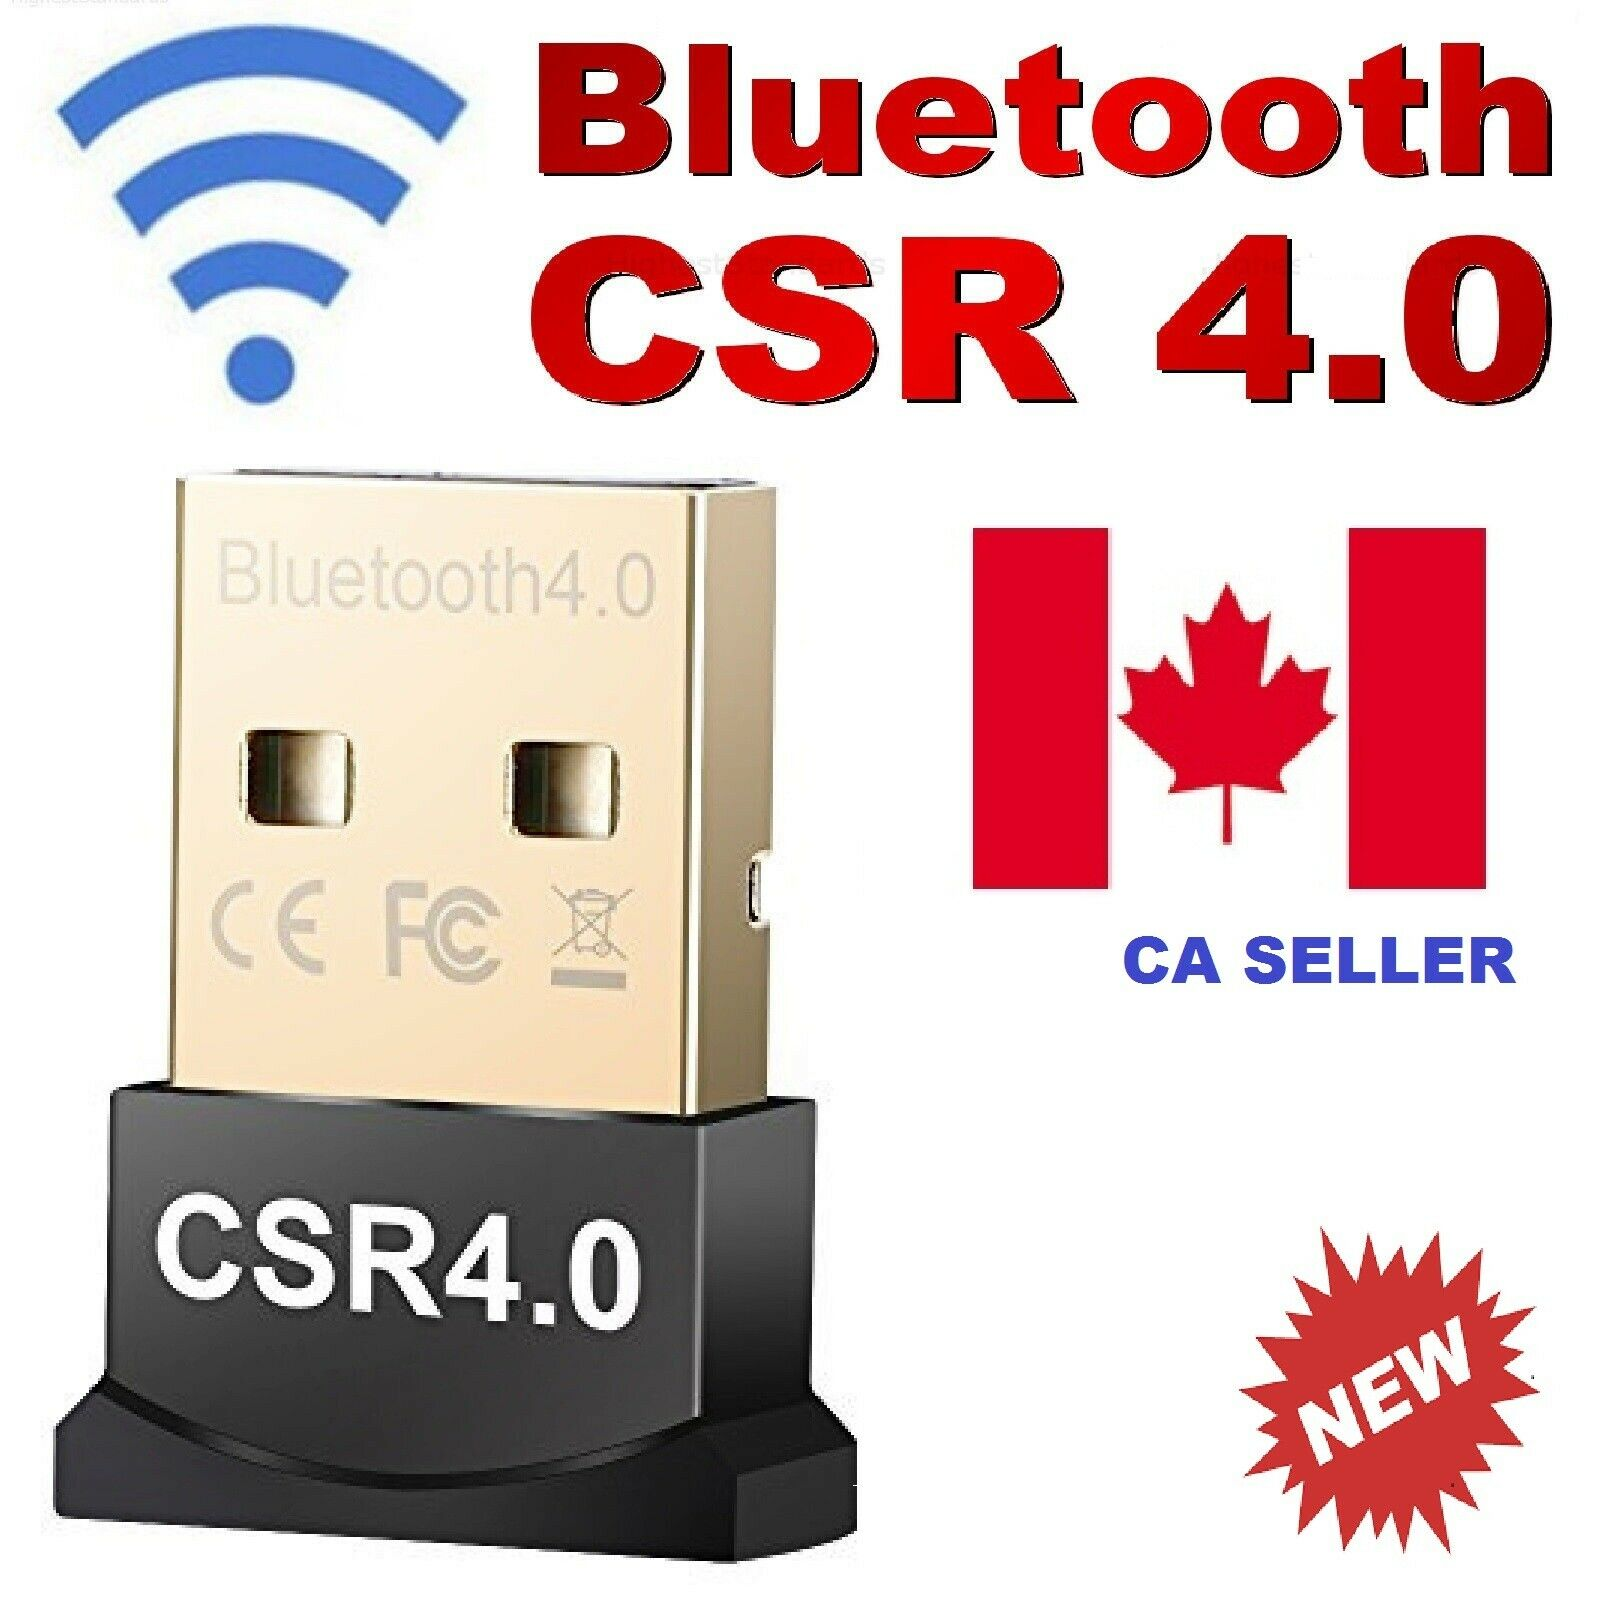 USB 4.0 Wireless Bluetooth Adapter Dongle CSR for PC,Linux,Printers,Laptop